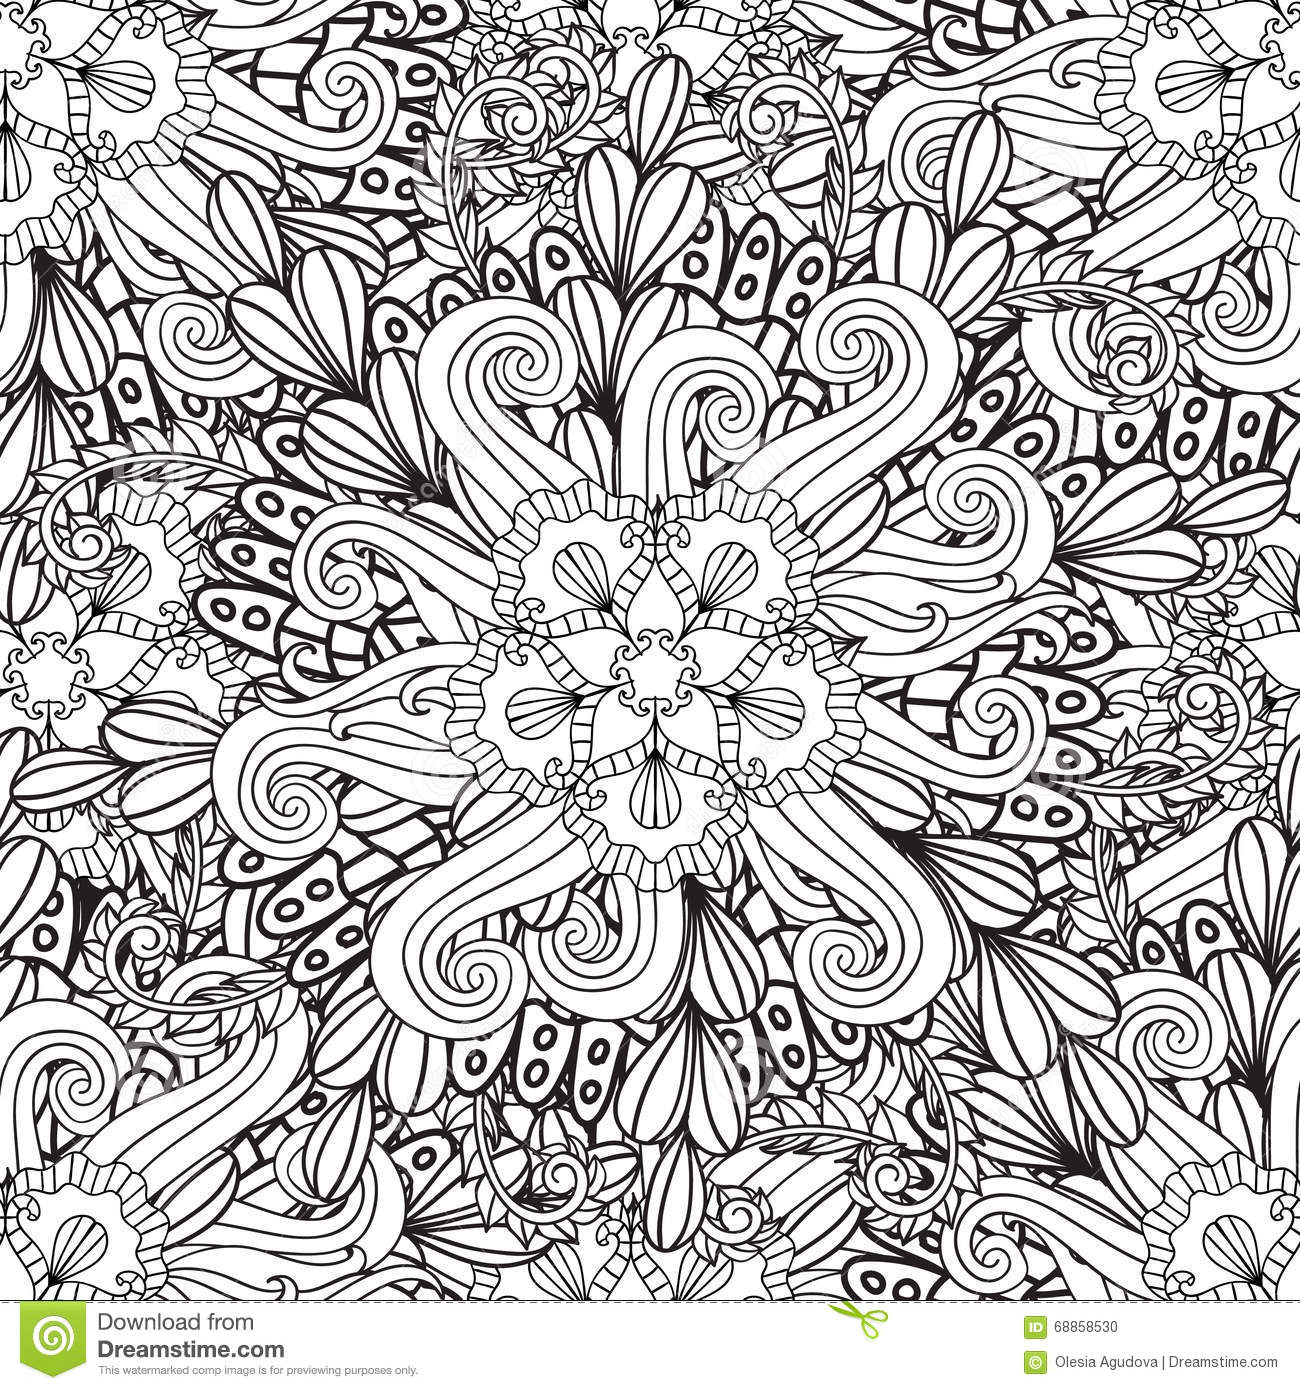 Download Coloring For Adults Ethnic Statue Sculpturedoll With Patterns Print On